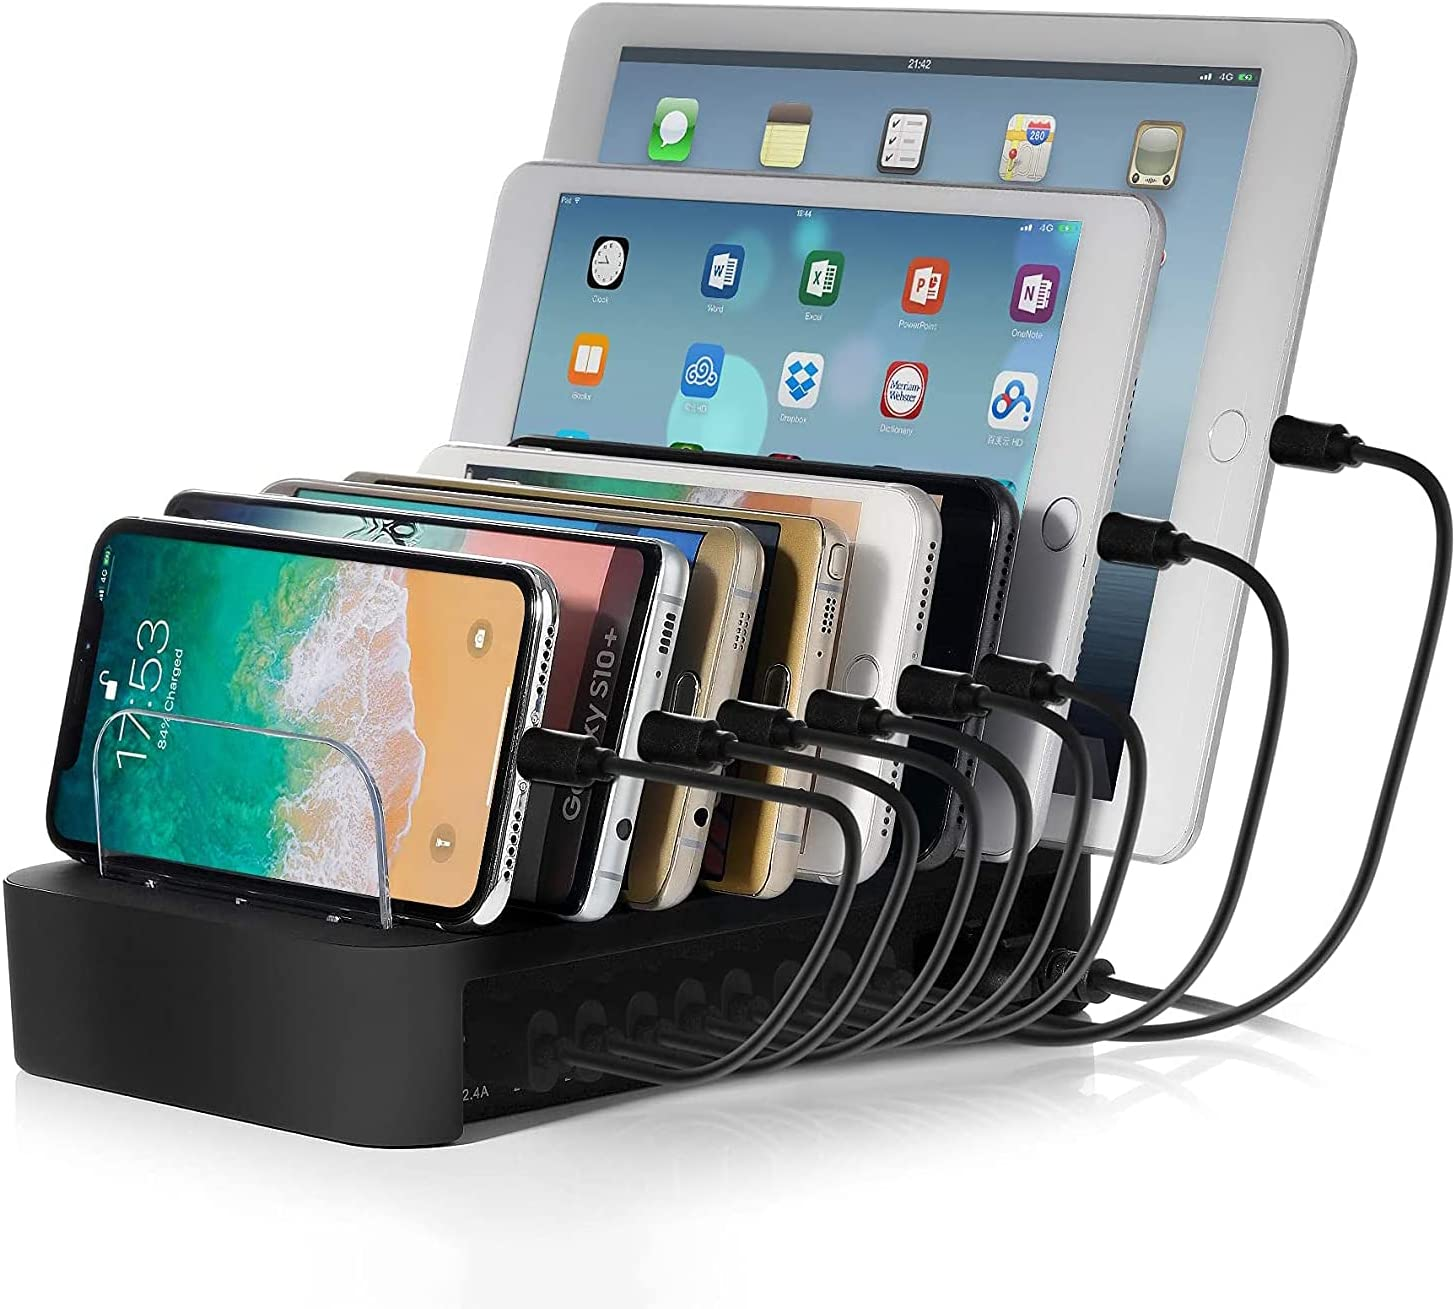 "NEXGADGET USB Charging Station Dock for Multiple Devices, 8-Port Desktop Charger,Charging Stand Organizer for Smart Phone,Tablet and Other USB Devices-8"" Cables Included"